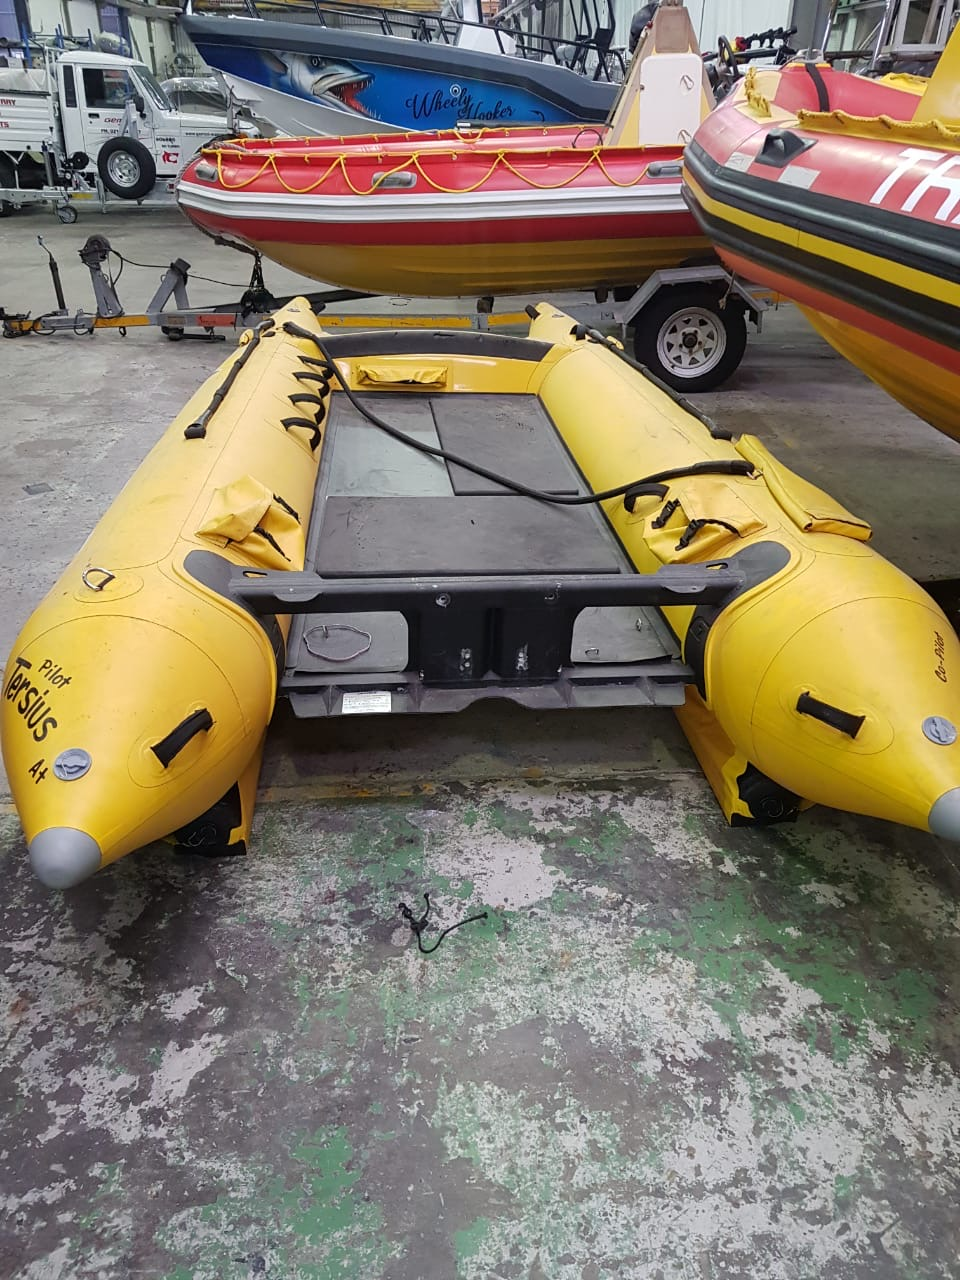 Used Gemini Zapcat F-1 for sale by IBR.US, yellow, 20 hours, pre-owned